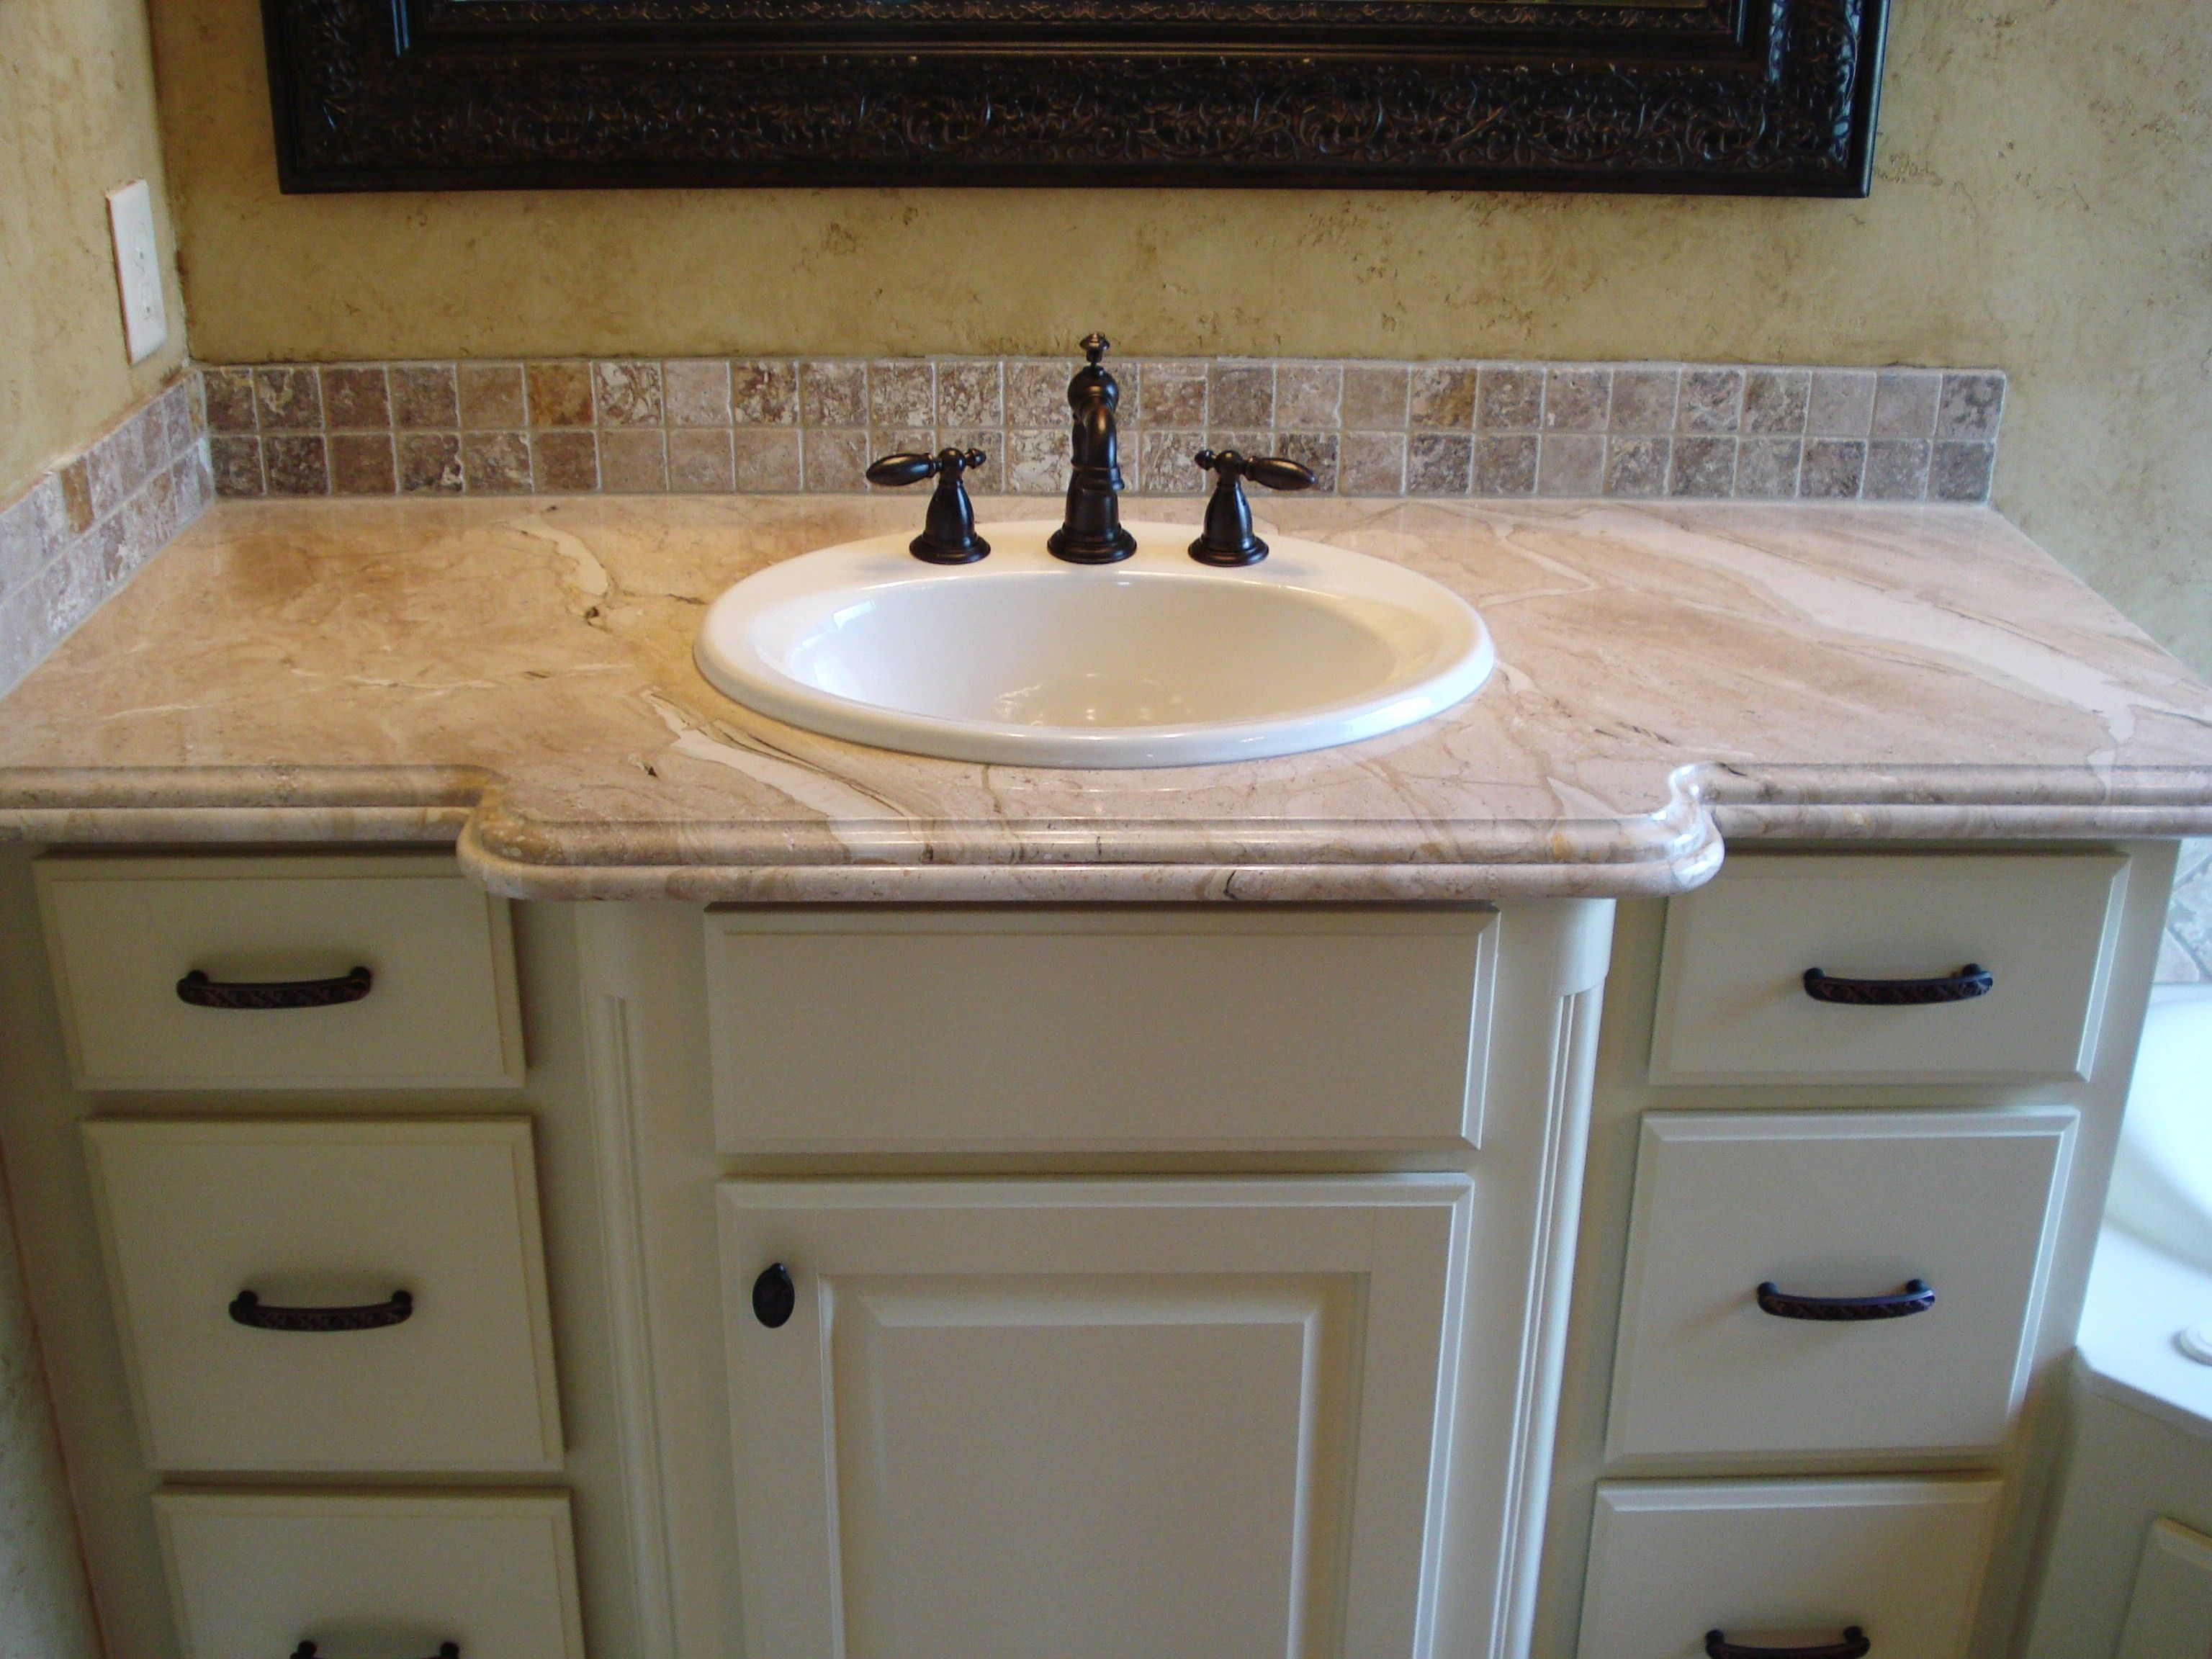 Charming Bathroom Kitchen Interior Cultured Marble Bathroom Vanity Tops Combined  White Under Mount Sink Cultured Marble Countertops